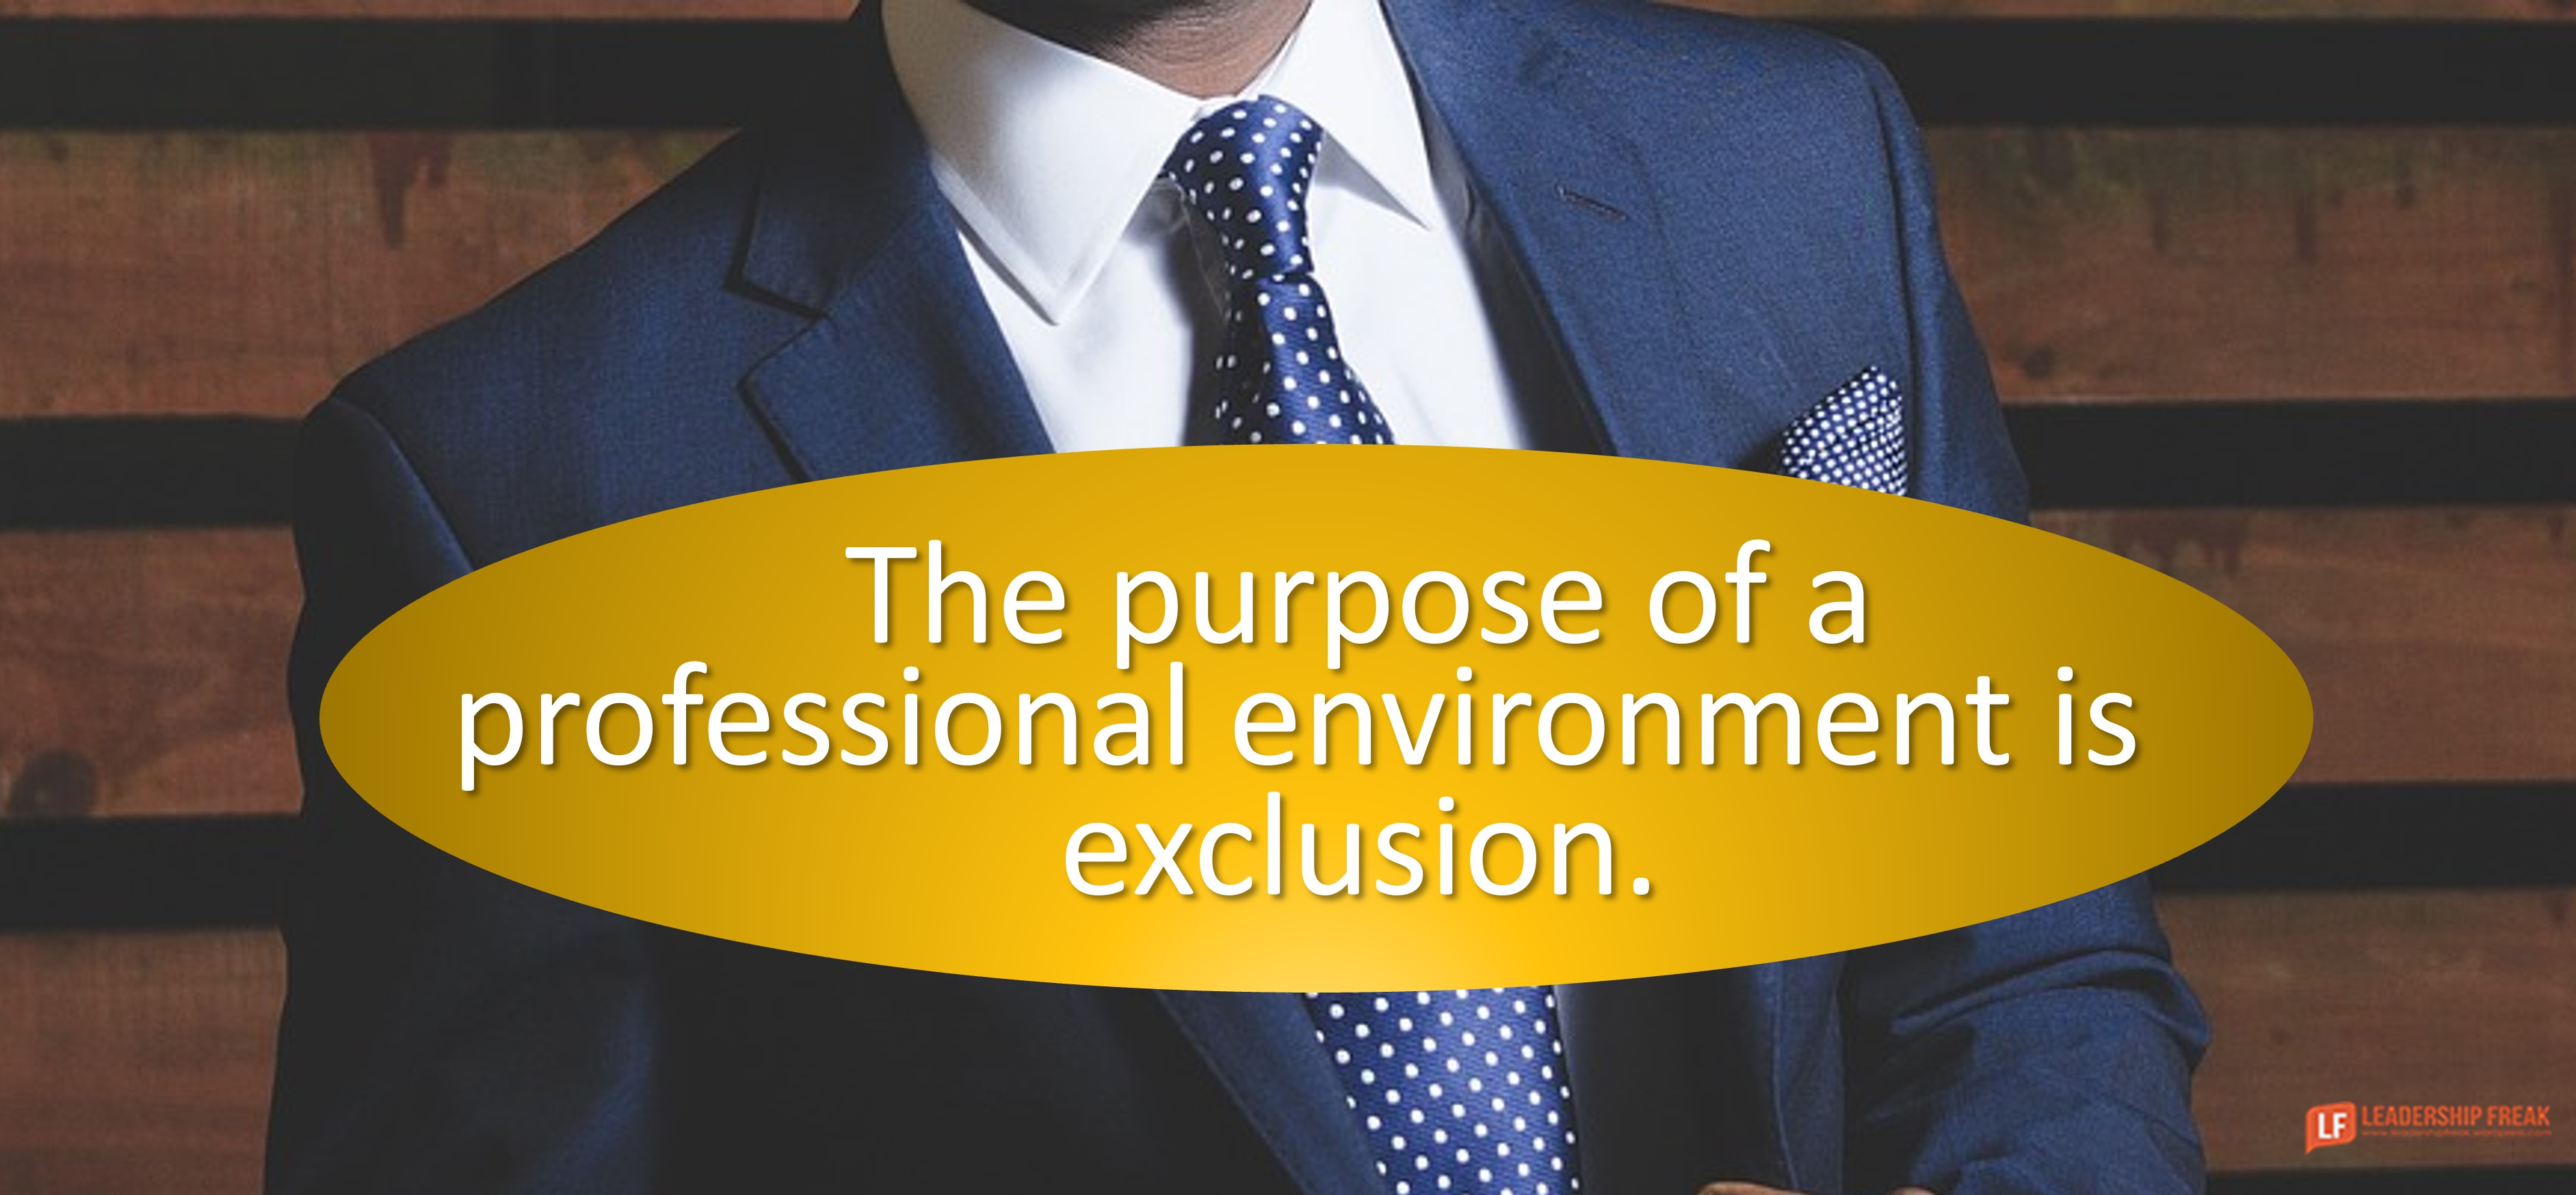 Suit and tie.  The purpose of a professional environment is exclusion.